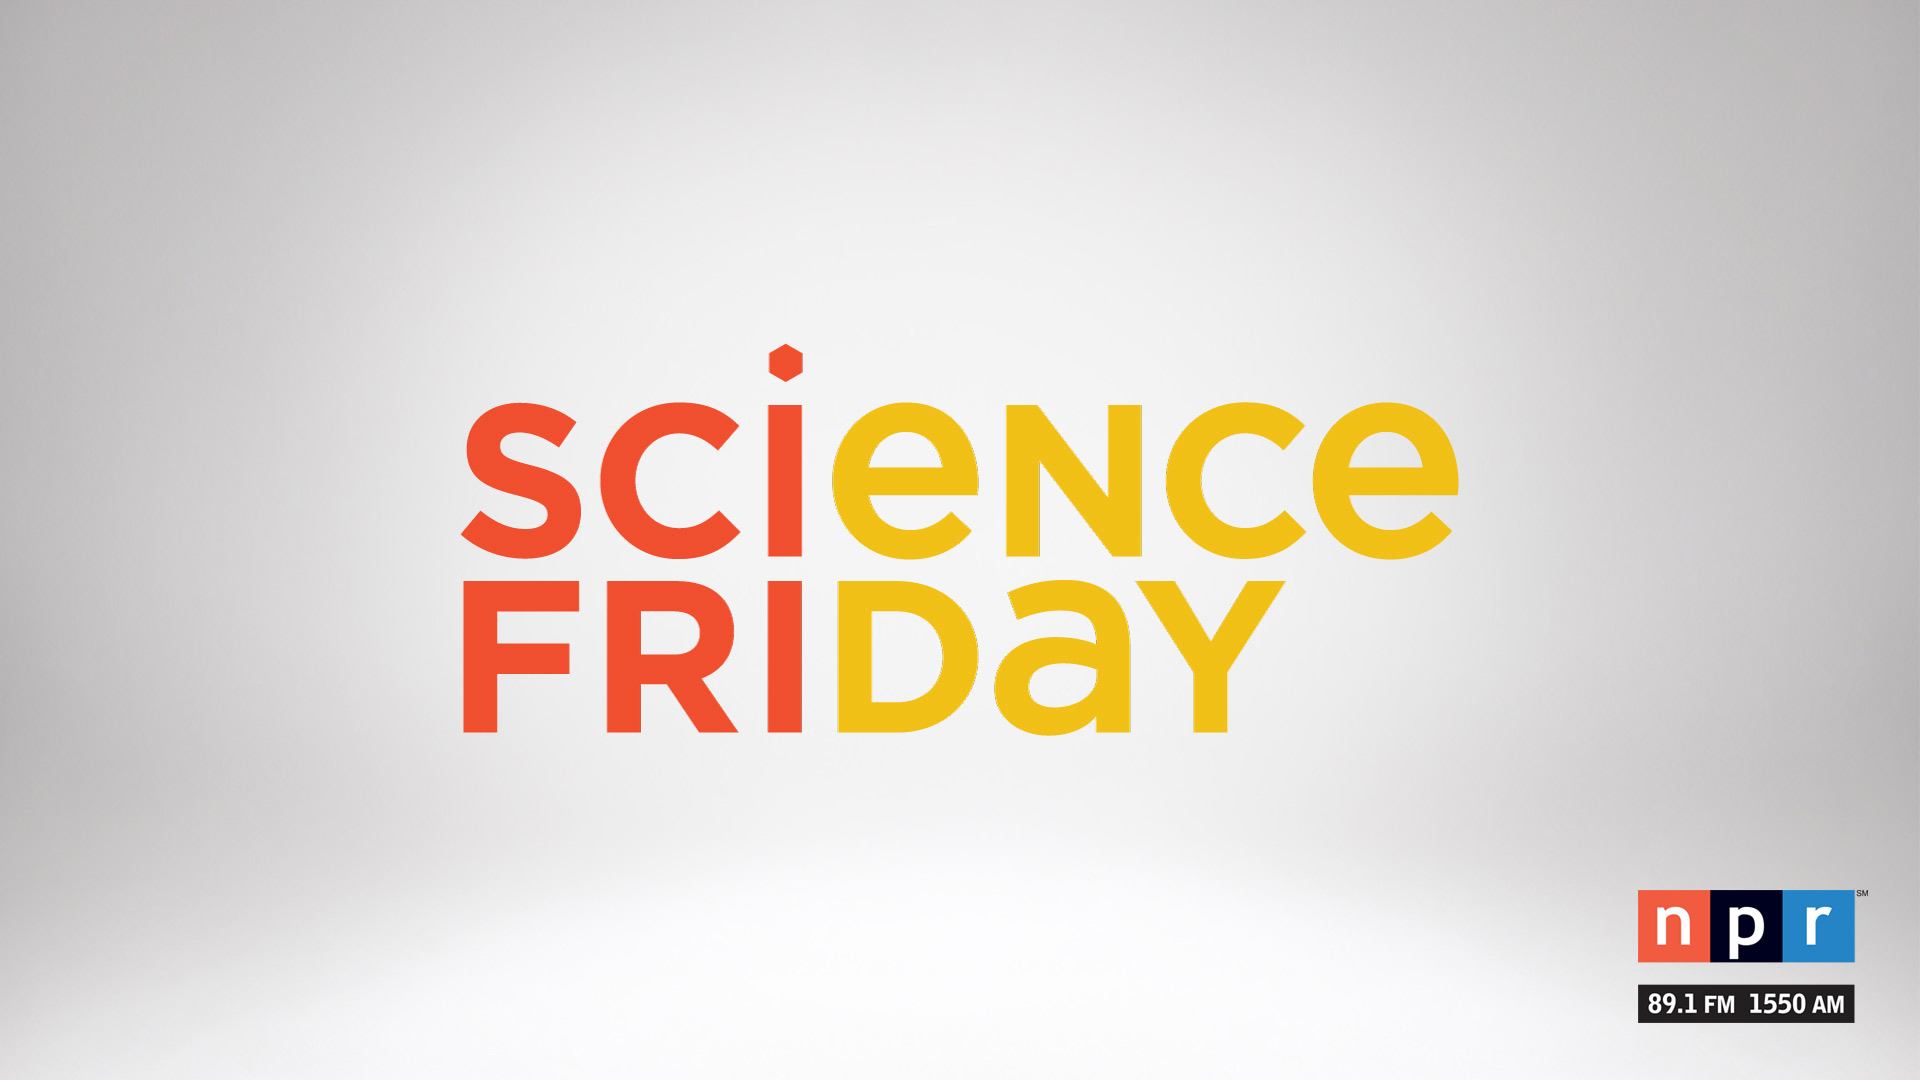 Science Friday on NPR 89.1